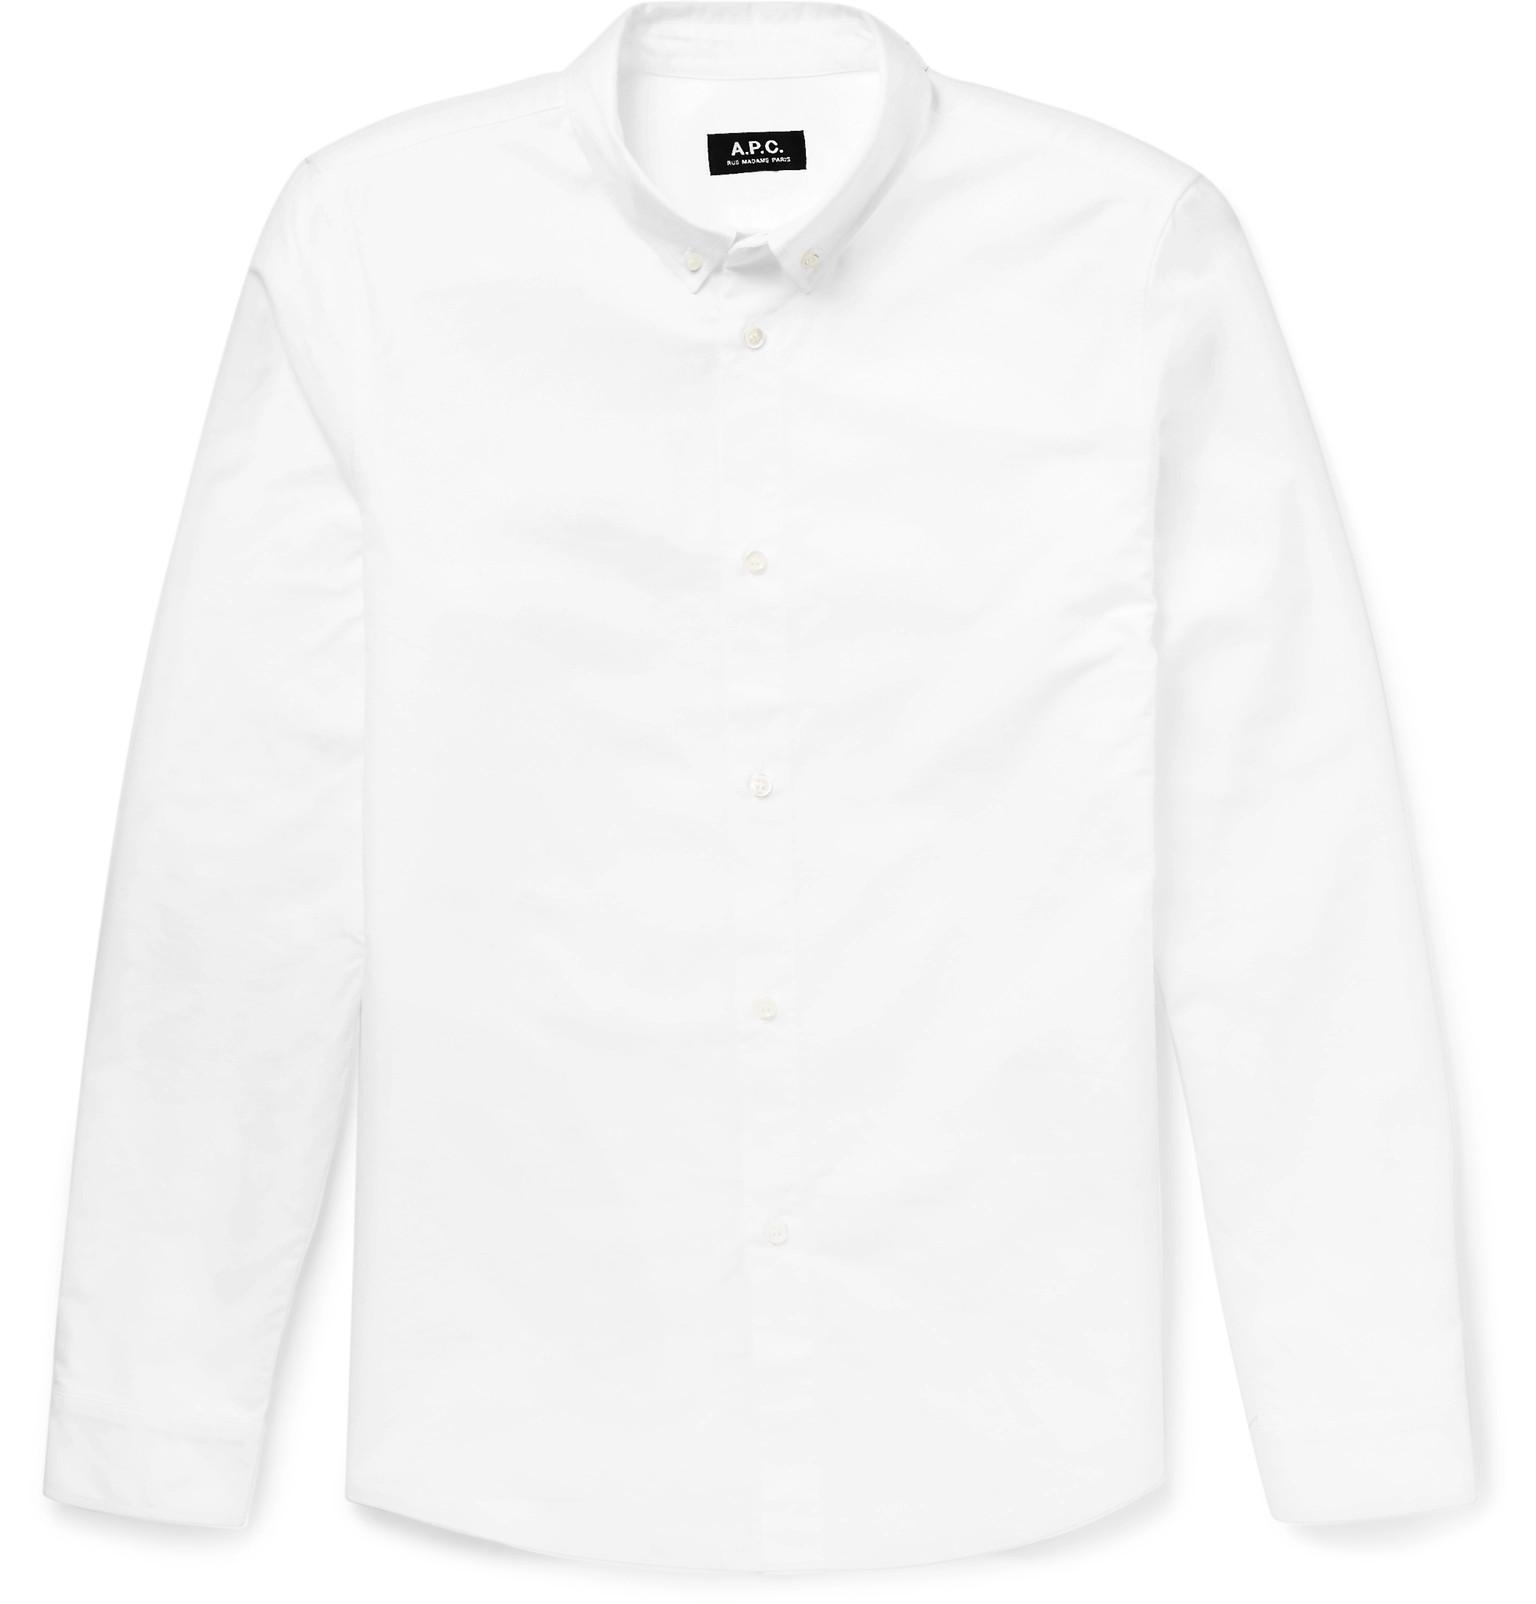 A p c slim fit button down collar cotton oxford shirt in for White button down collar oxford shirt